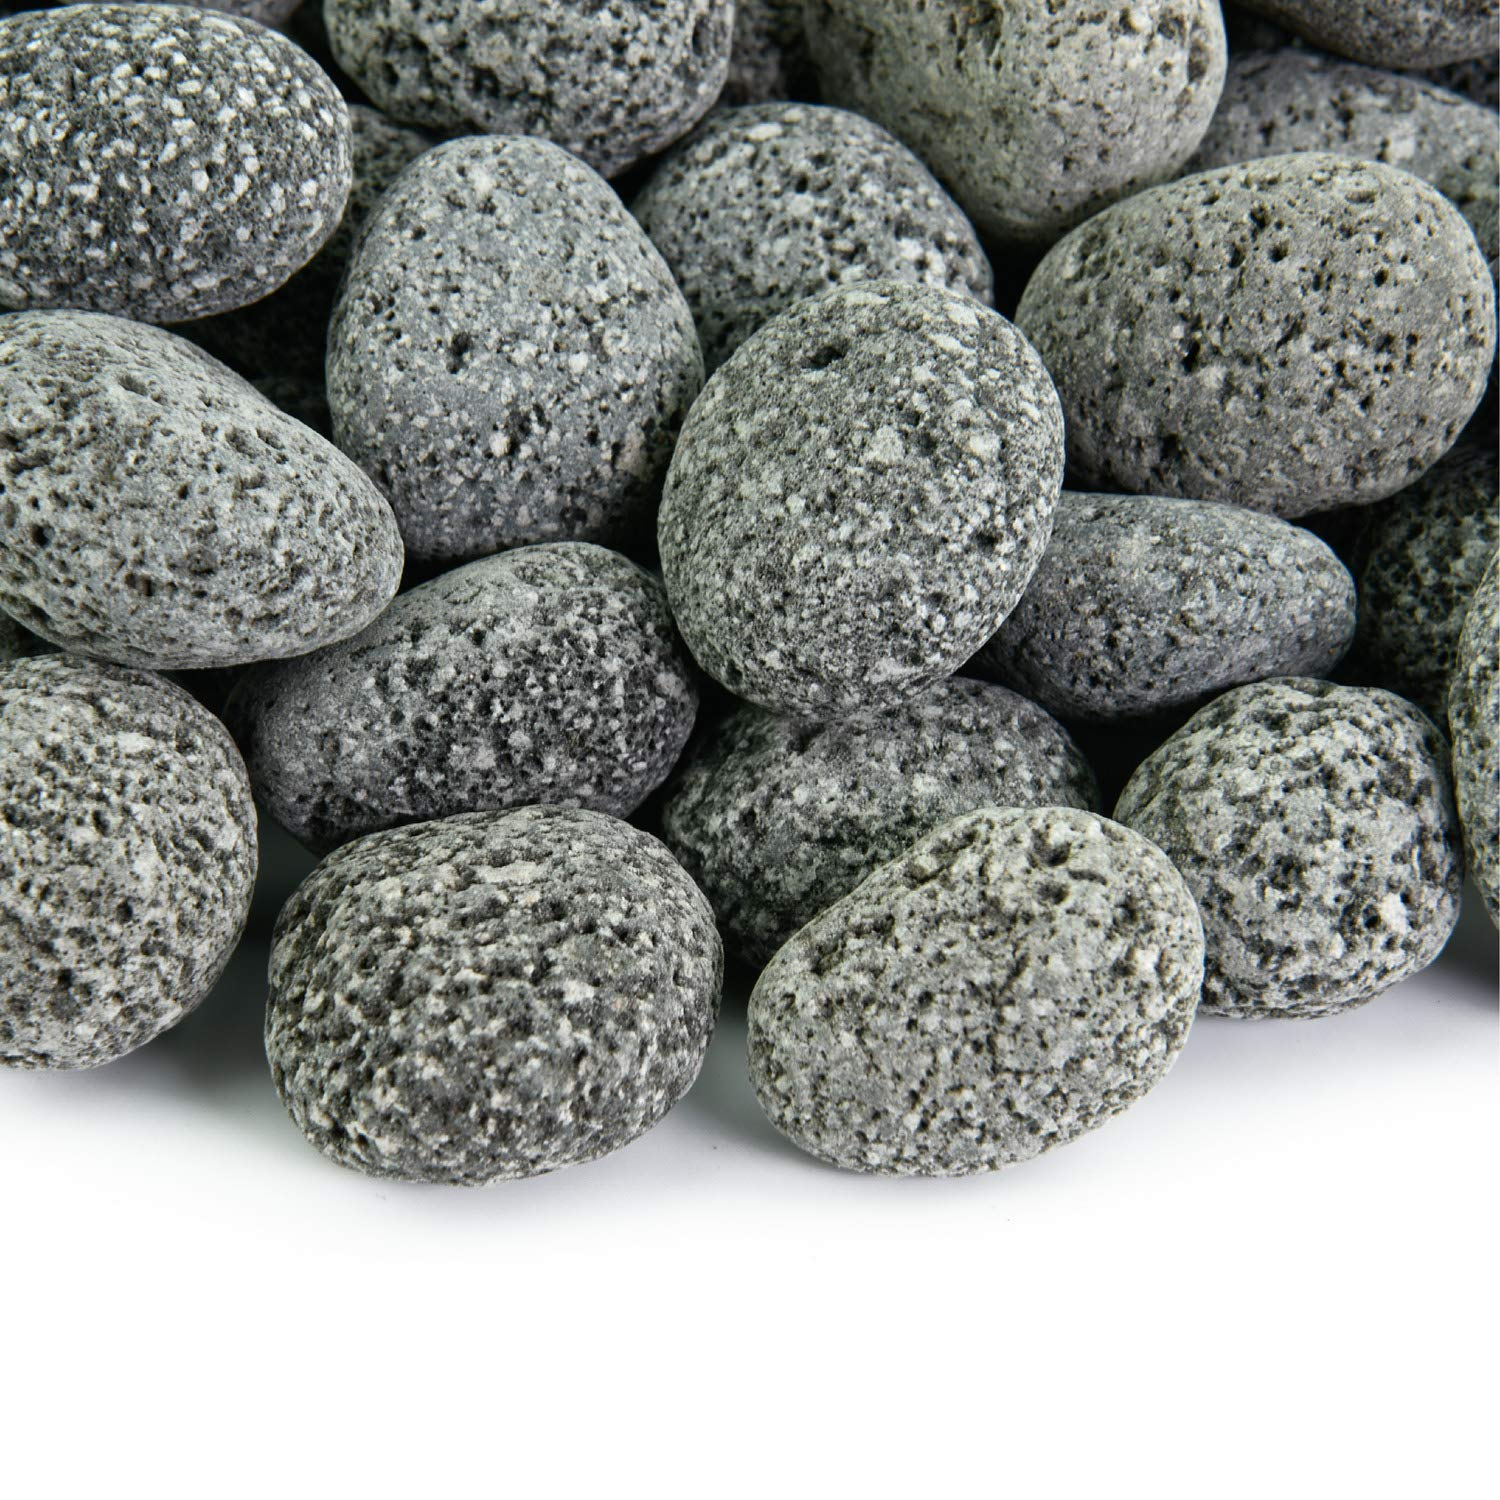 Black 1 Inch - 2 Inch Fire Rock | Fireproof and Heatproof Round Pebbles for Indoor or Outdoor Gas Fire Pits and Fireplaces - Natural, Hand-Picked Stones | 10 Pounds